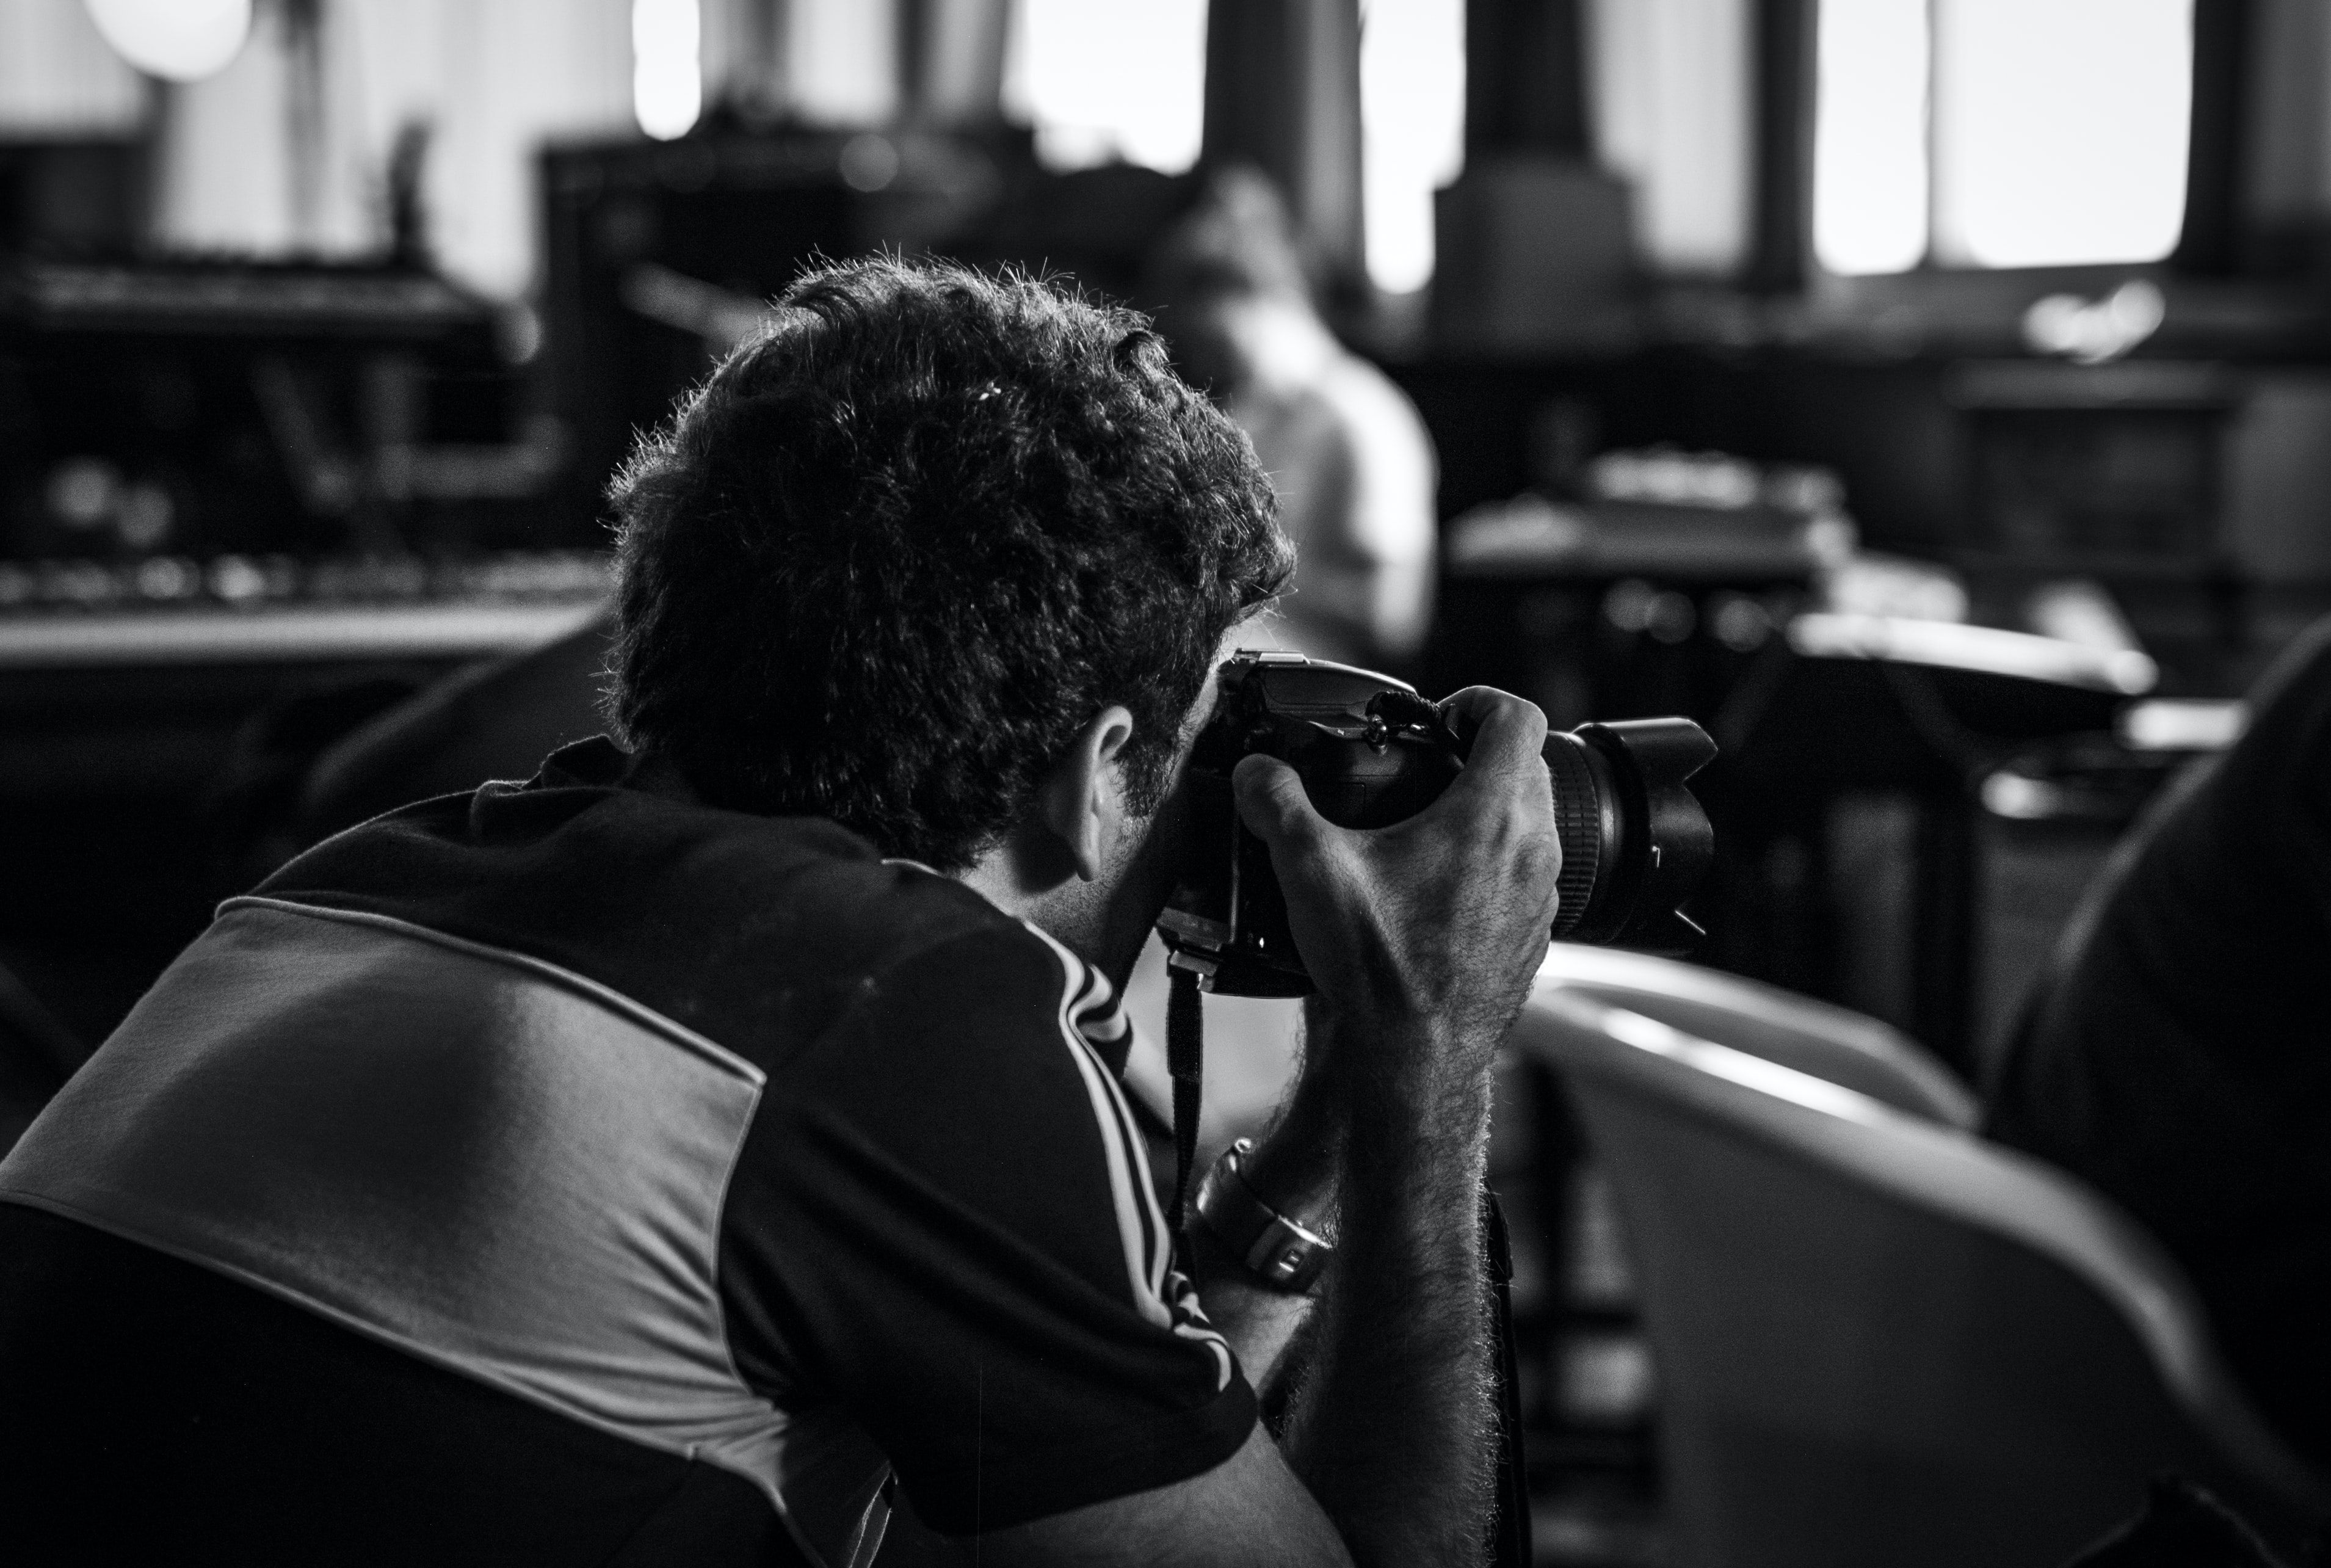 grayscale photography on man taking photos